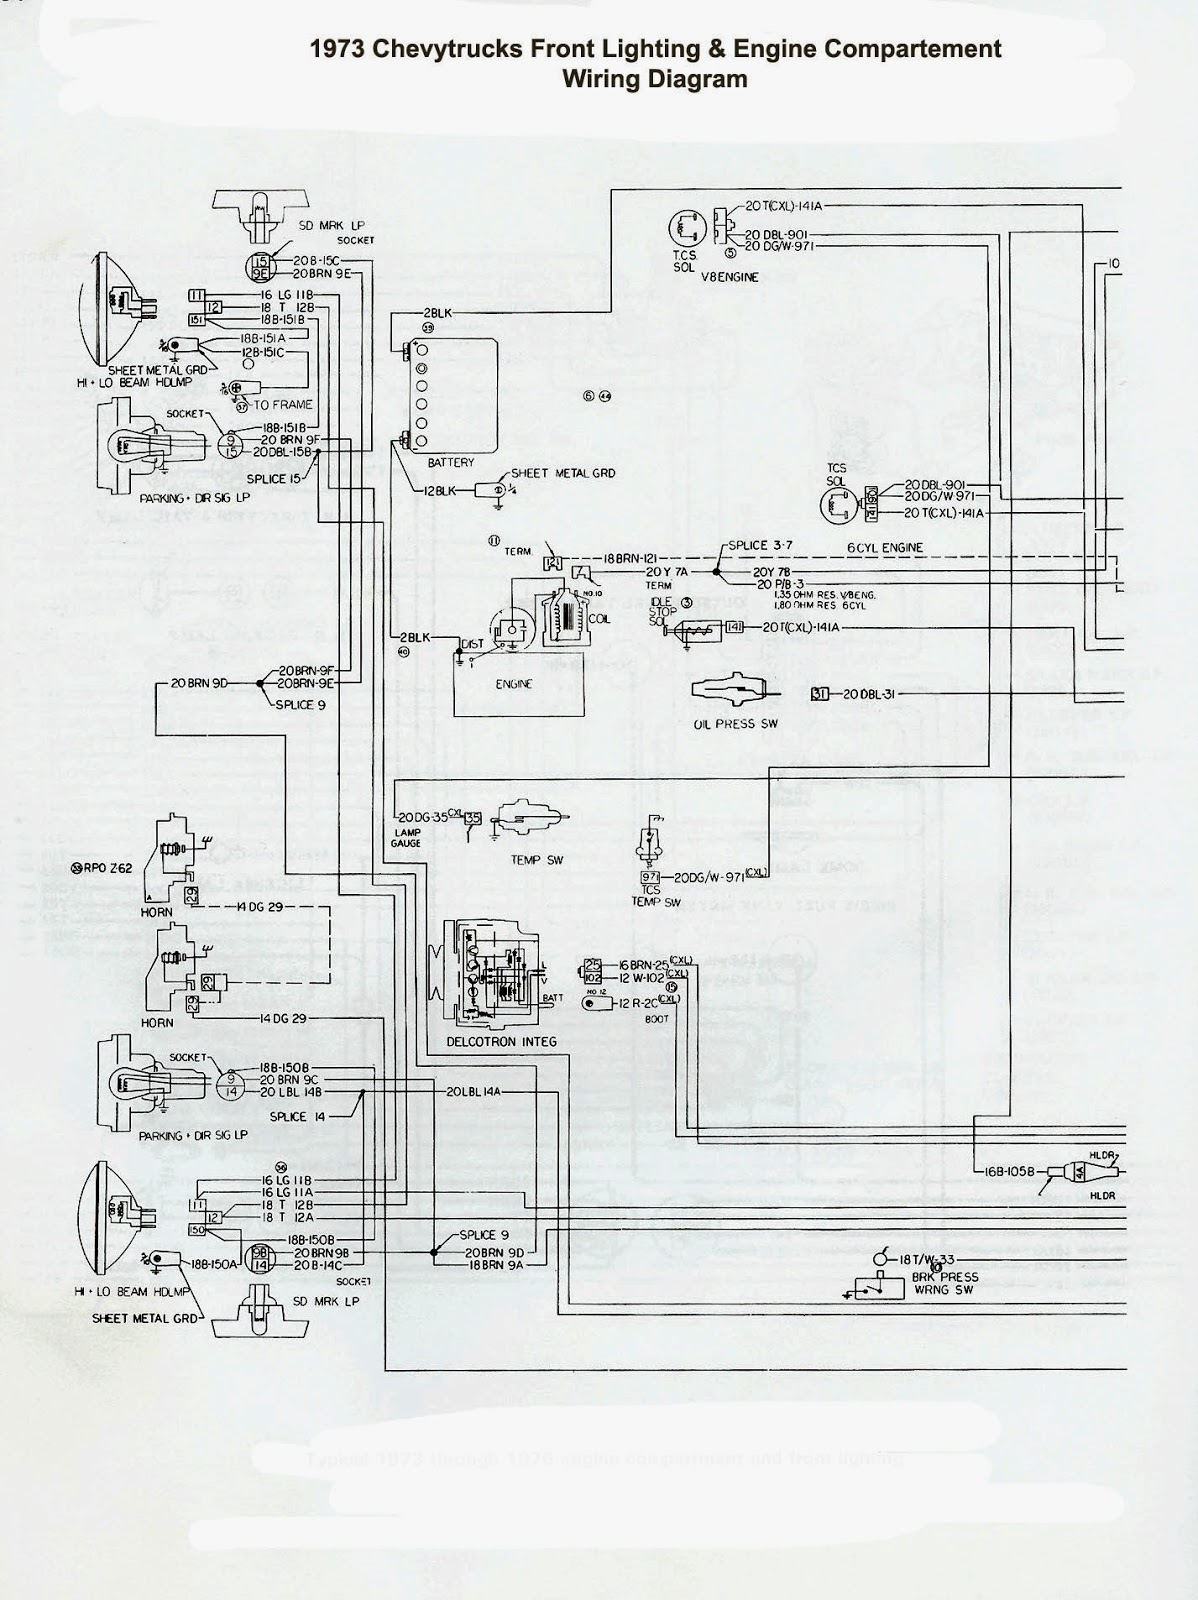 chevytruks.+engine+n+frontlight73 76_eng_frt_light+copy july 2014 electrical winding wiring diagrams ford 3000 electrical wiring diagram at bakdesigns.co